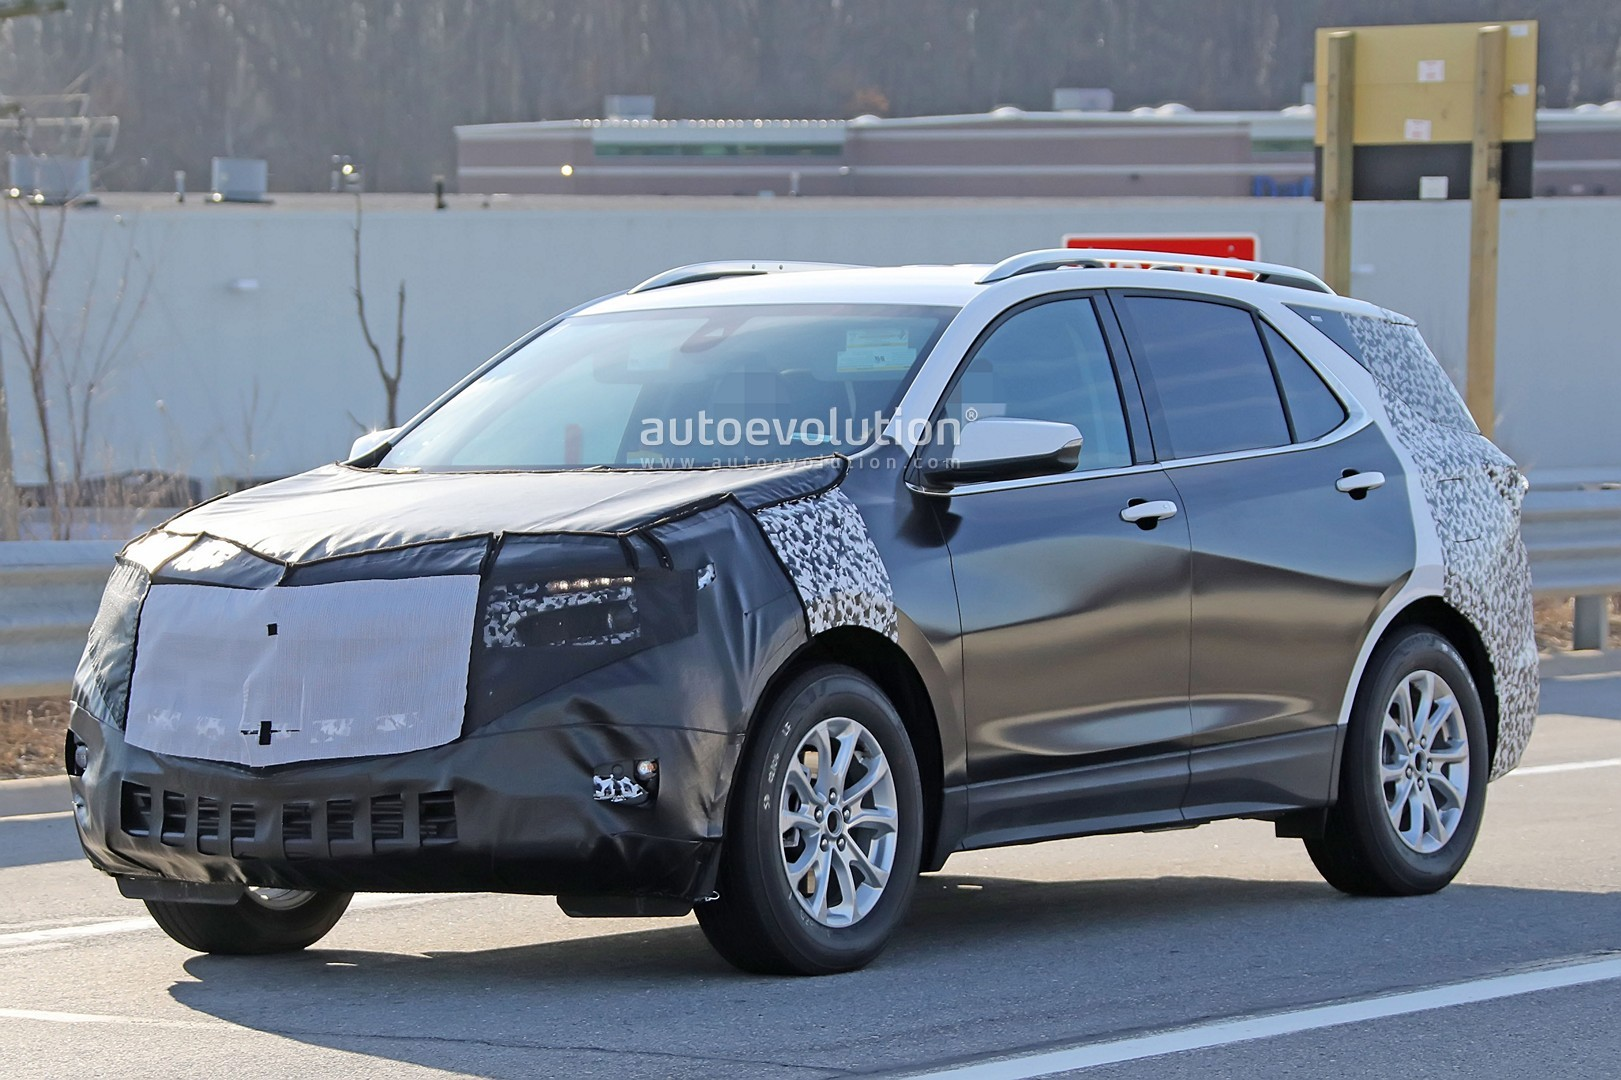 Chevrolet Equinox Fuel Cell 1 Million Miles And Counting